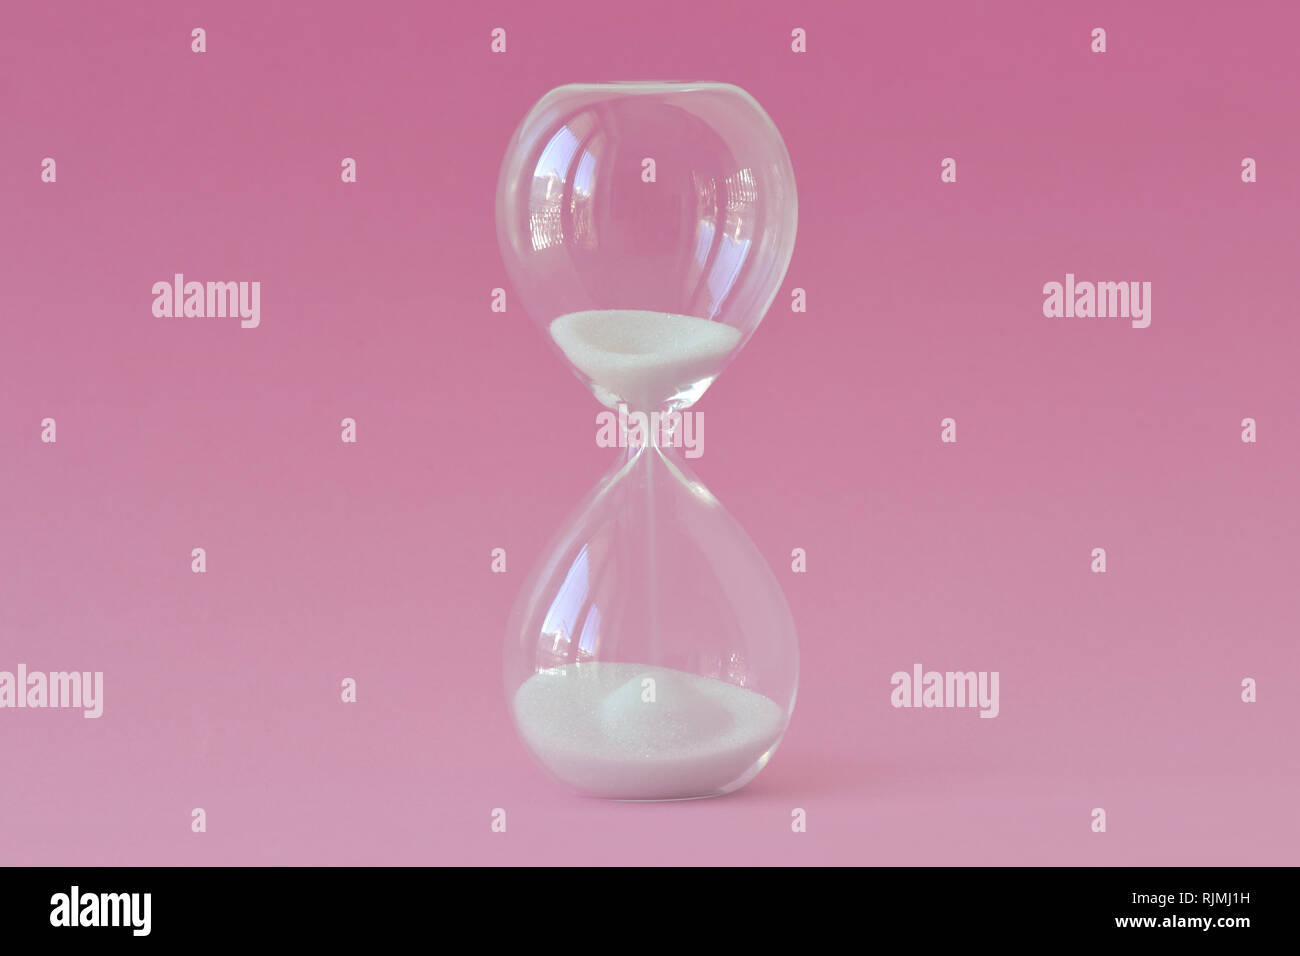 Hourglass on pink background - Concept of health, fertility and biological clock in women - Stock Image